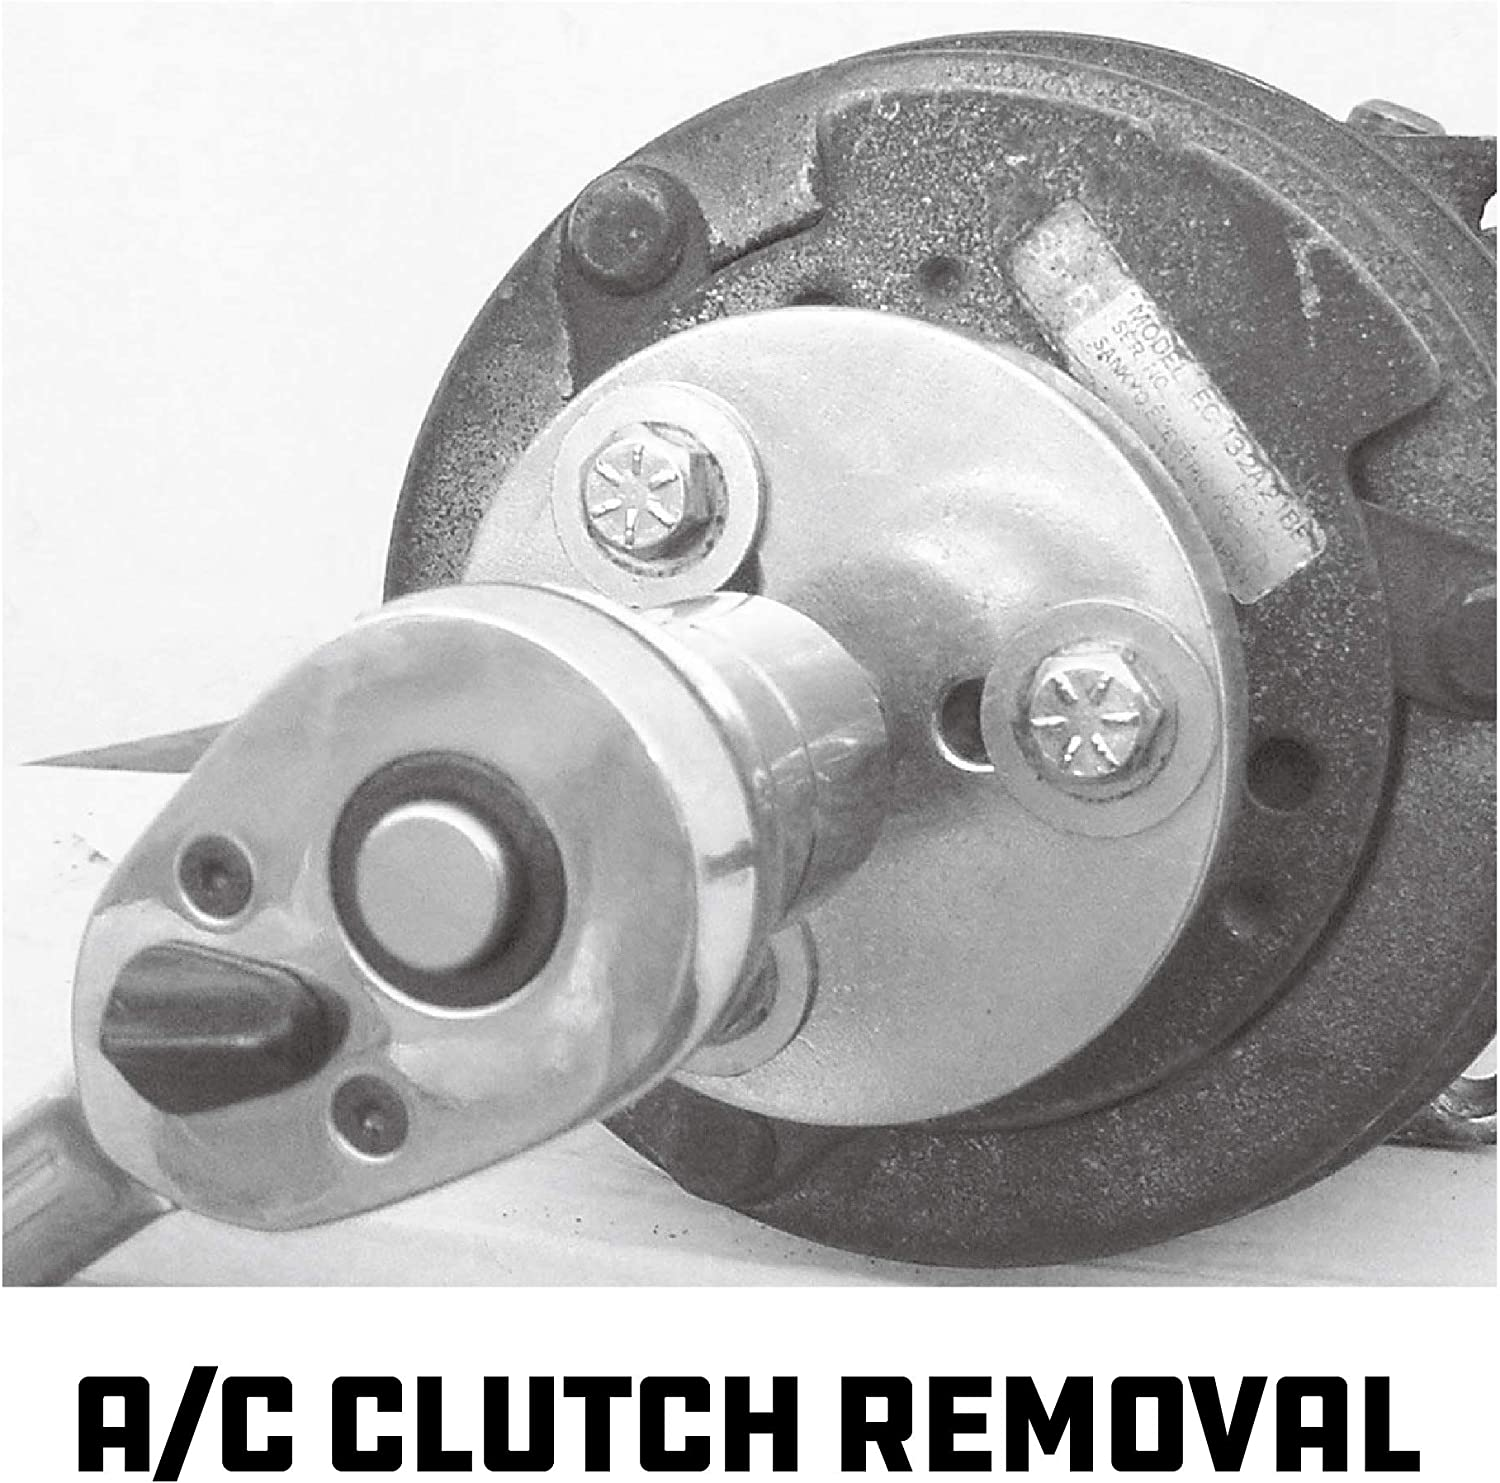 BTSHUB 21pc A//C Clutch Removal /& Installation Kit Air Conditioner Clutch Holding Tool Set